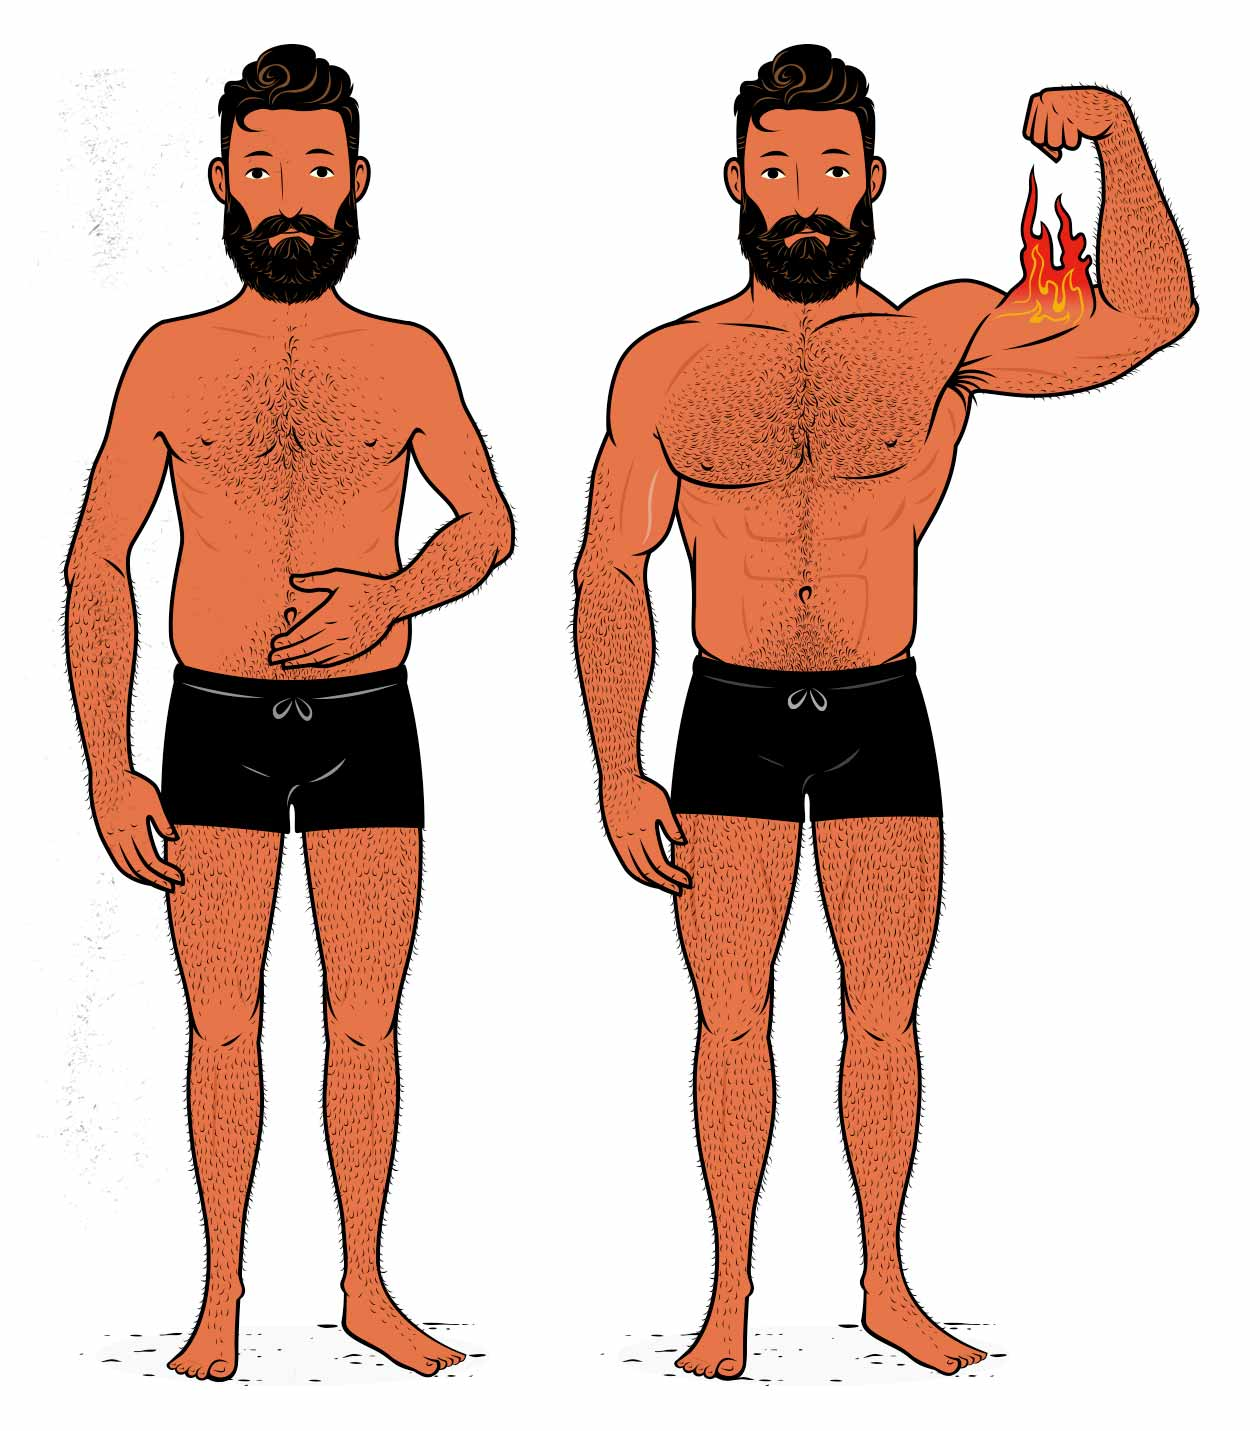 Illustration showing a skinny-fat guy building muscle and losing fat